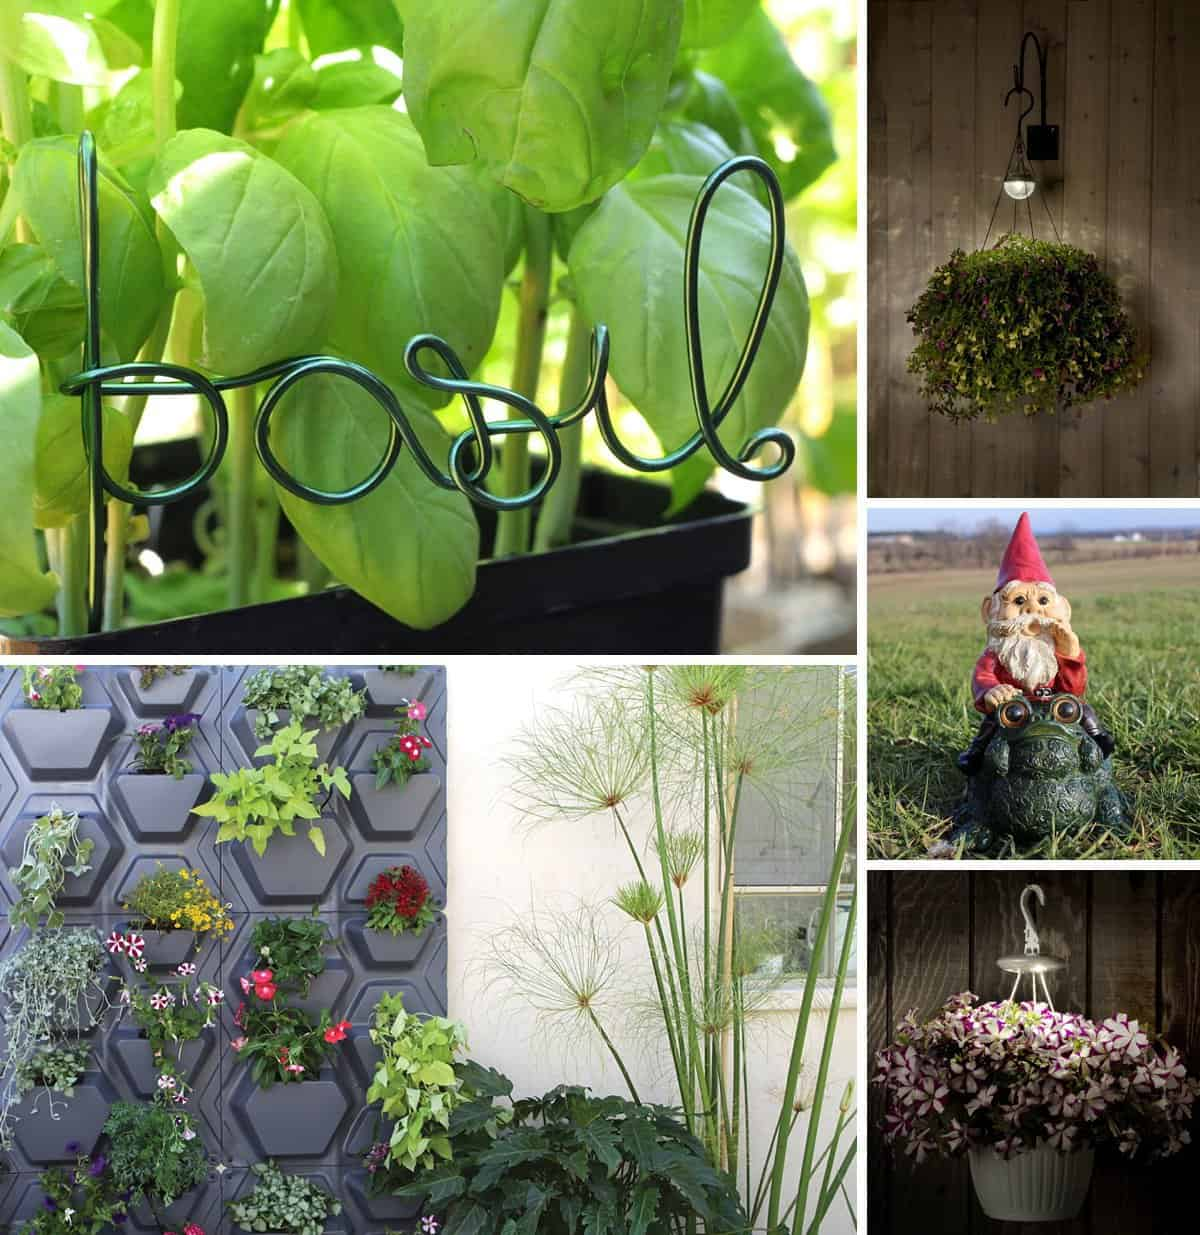 Awesome collection of gift ideas for the gardener in your life *Love the vertical garden, too cool